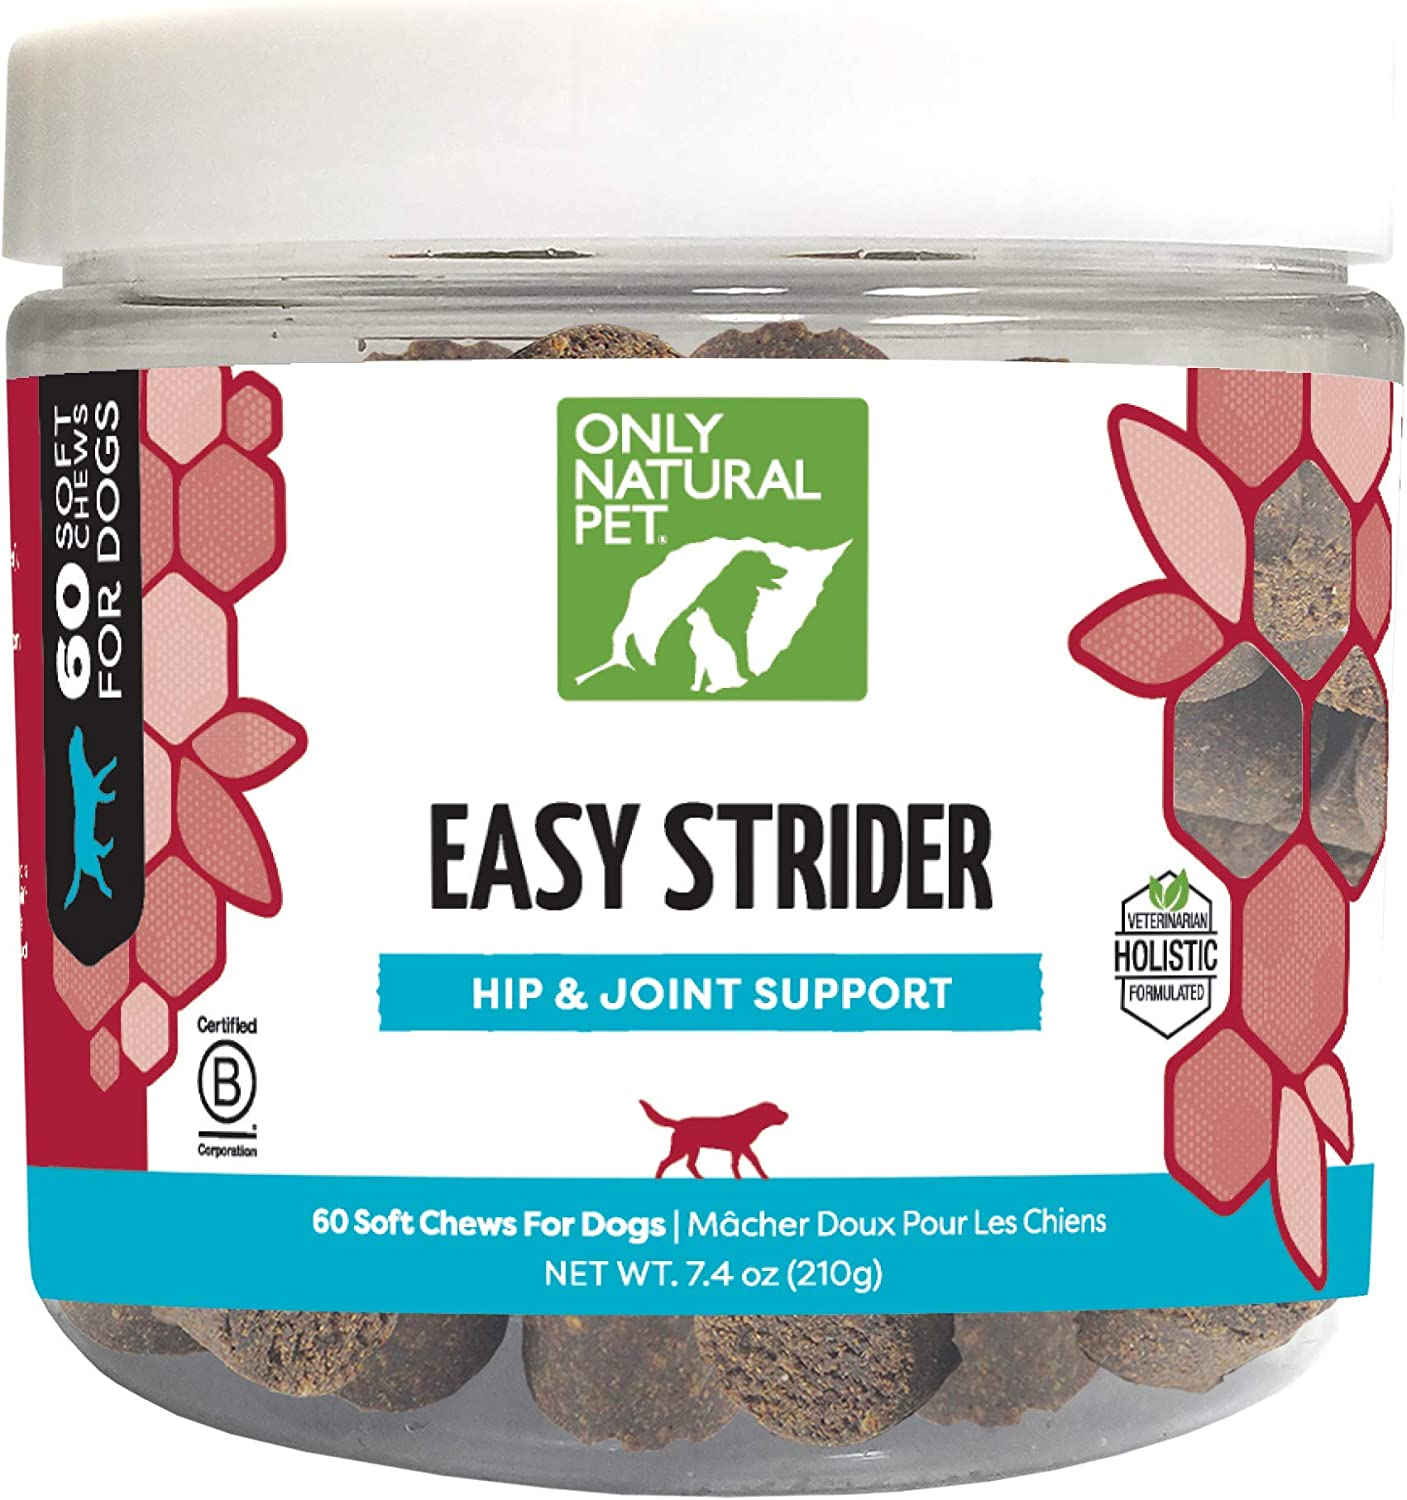 Only Natural Pet Easy Strider Hip and Joint Supplement, All Natural Holistic Glucosamine & Turmeric Formula for Dogs - Made in USA